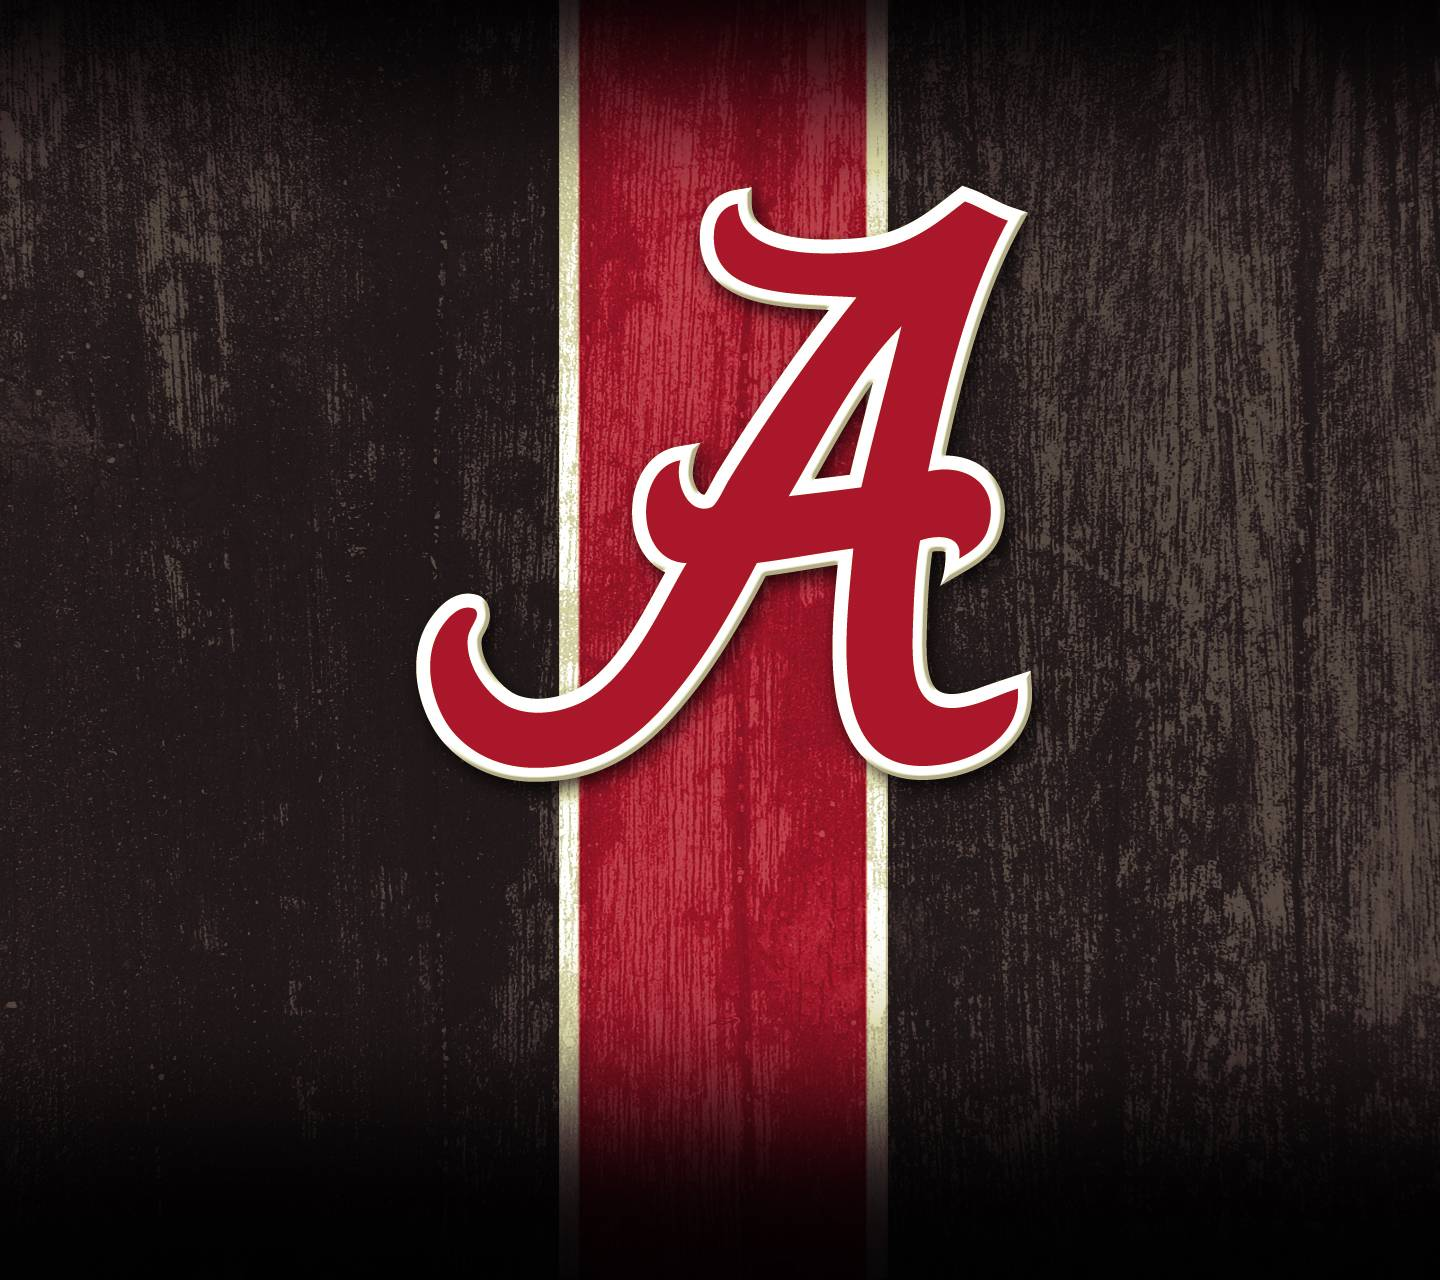 Download free alabama wallpapers for your mobile phone